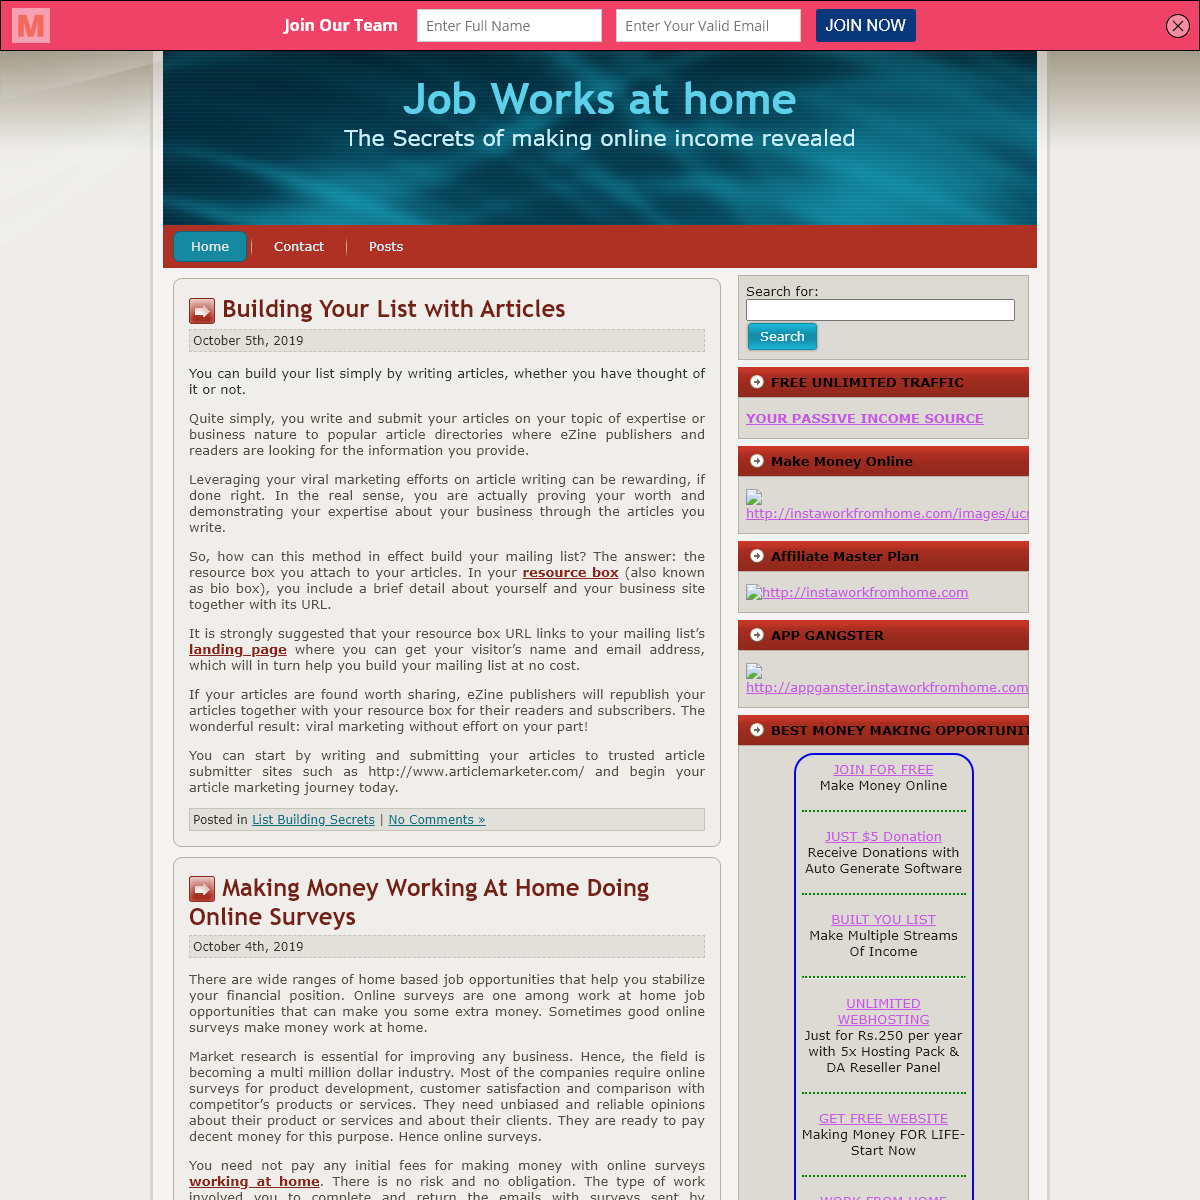 Job Works at home